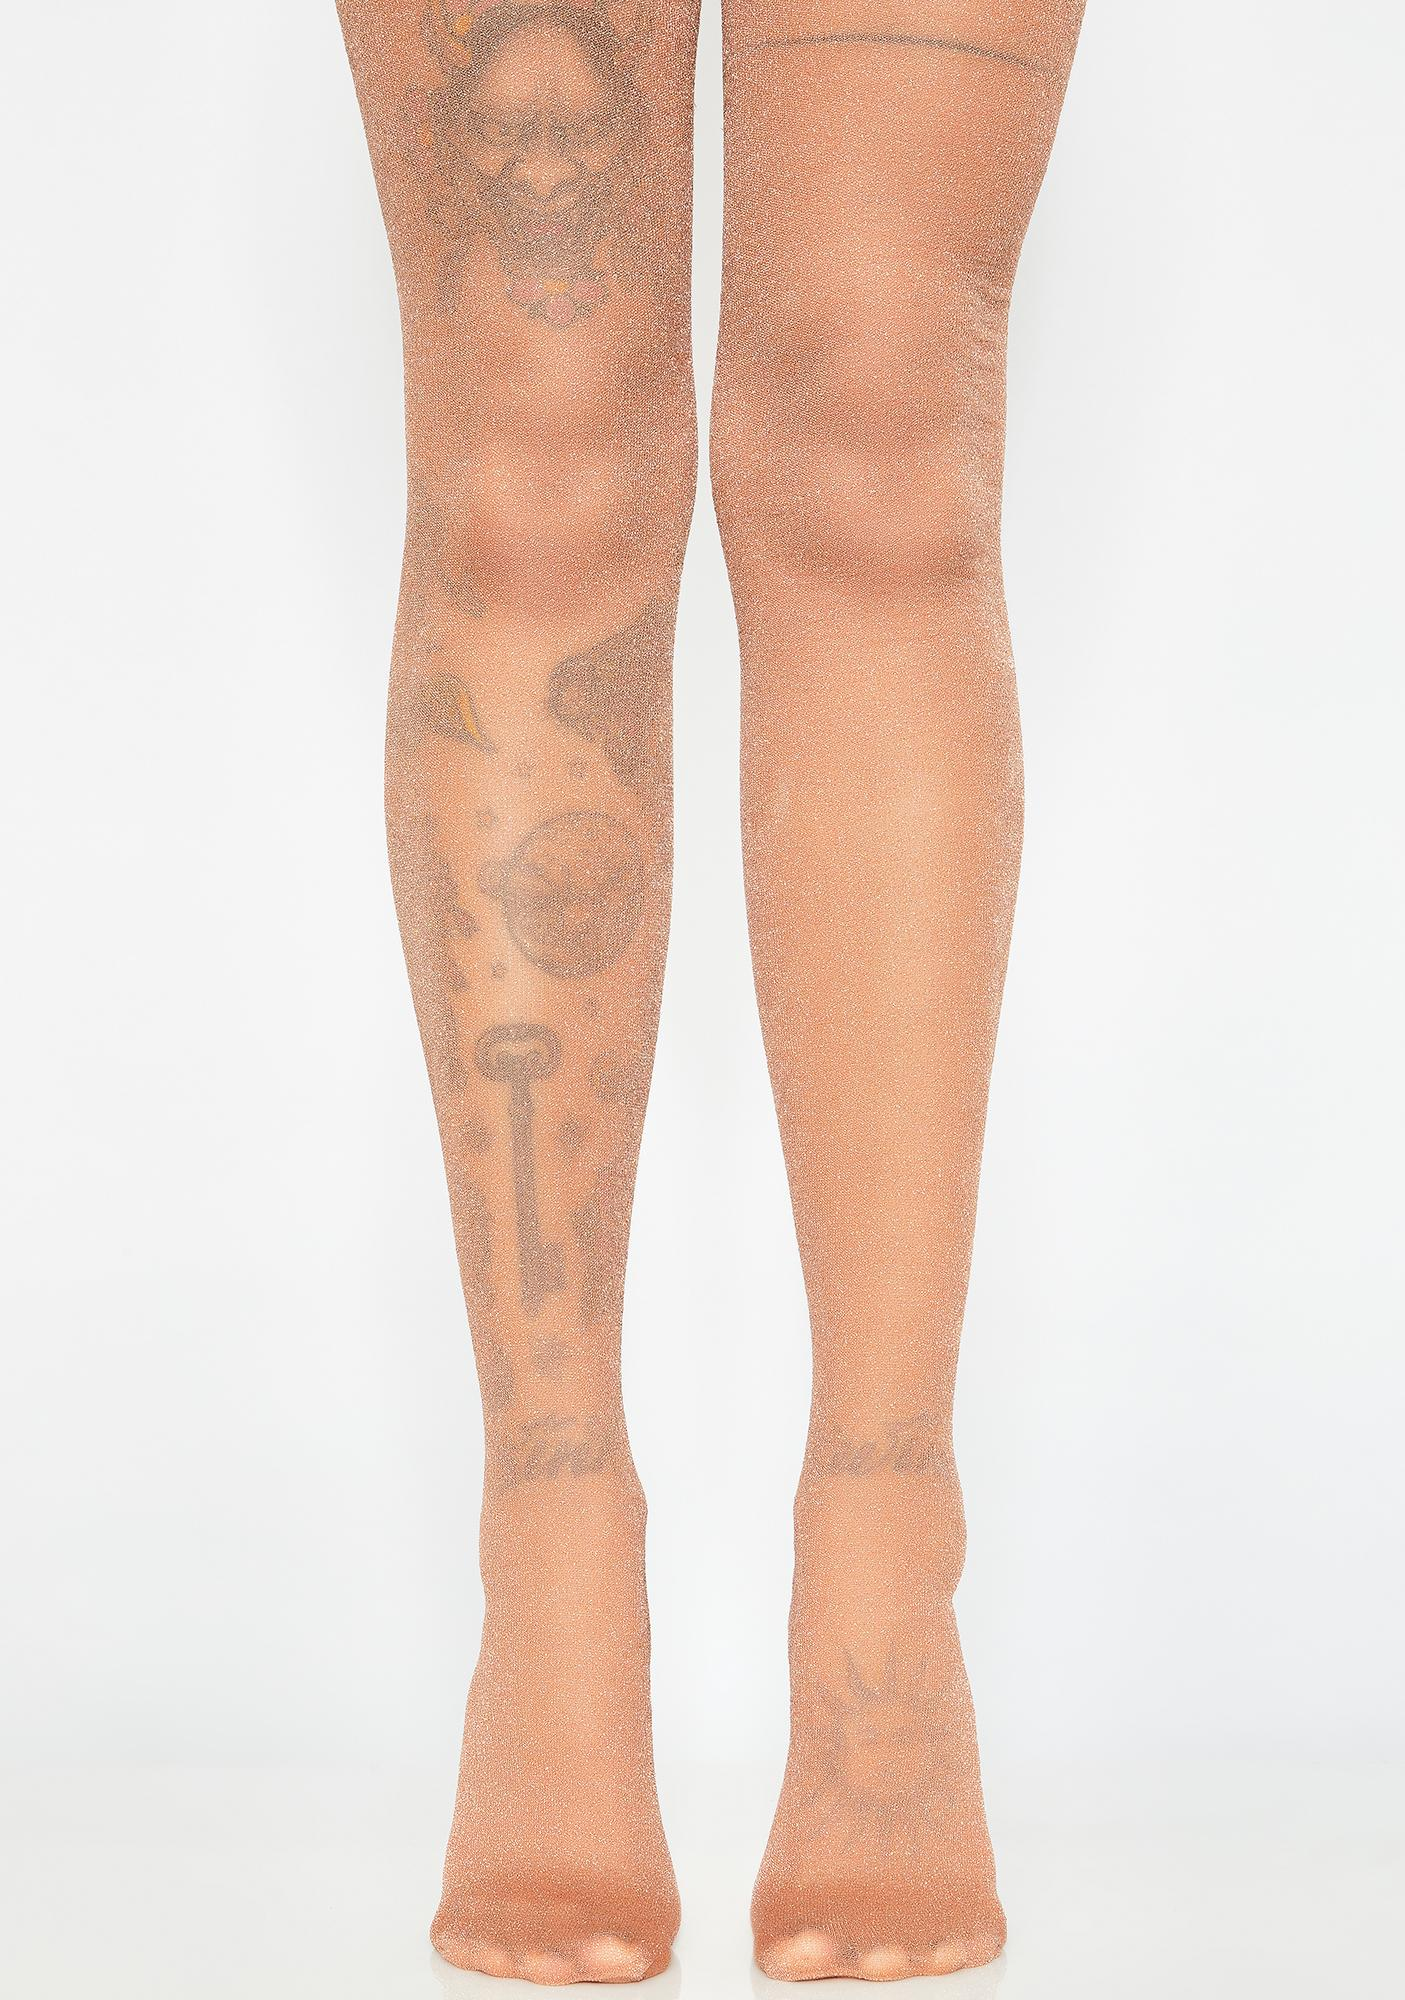 Remarkable, gold shimmer pantyhose with